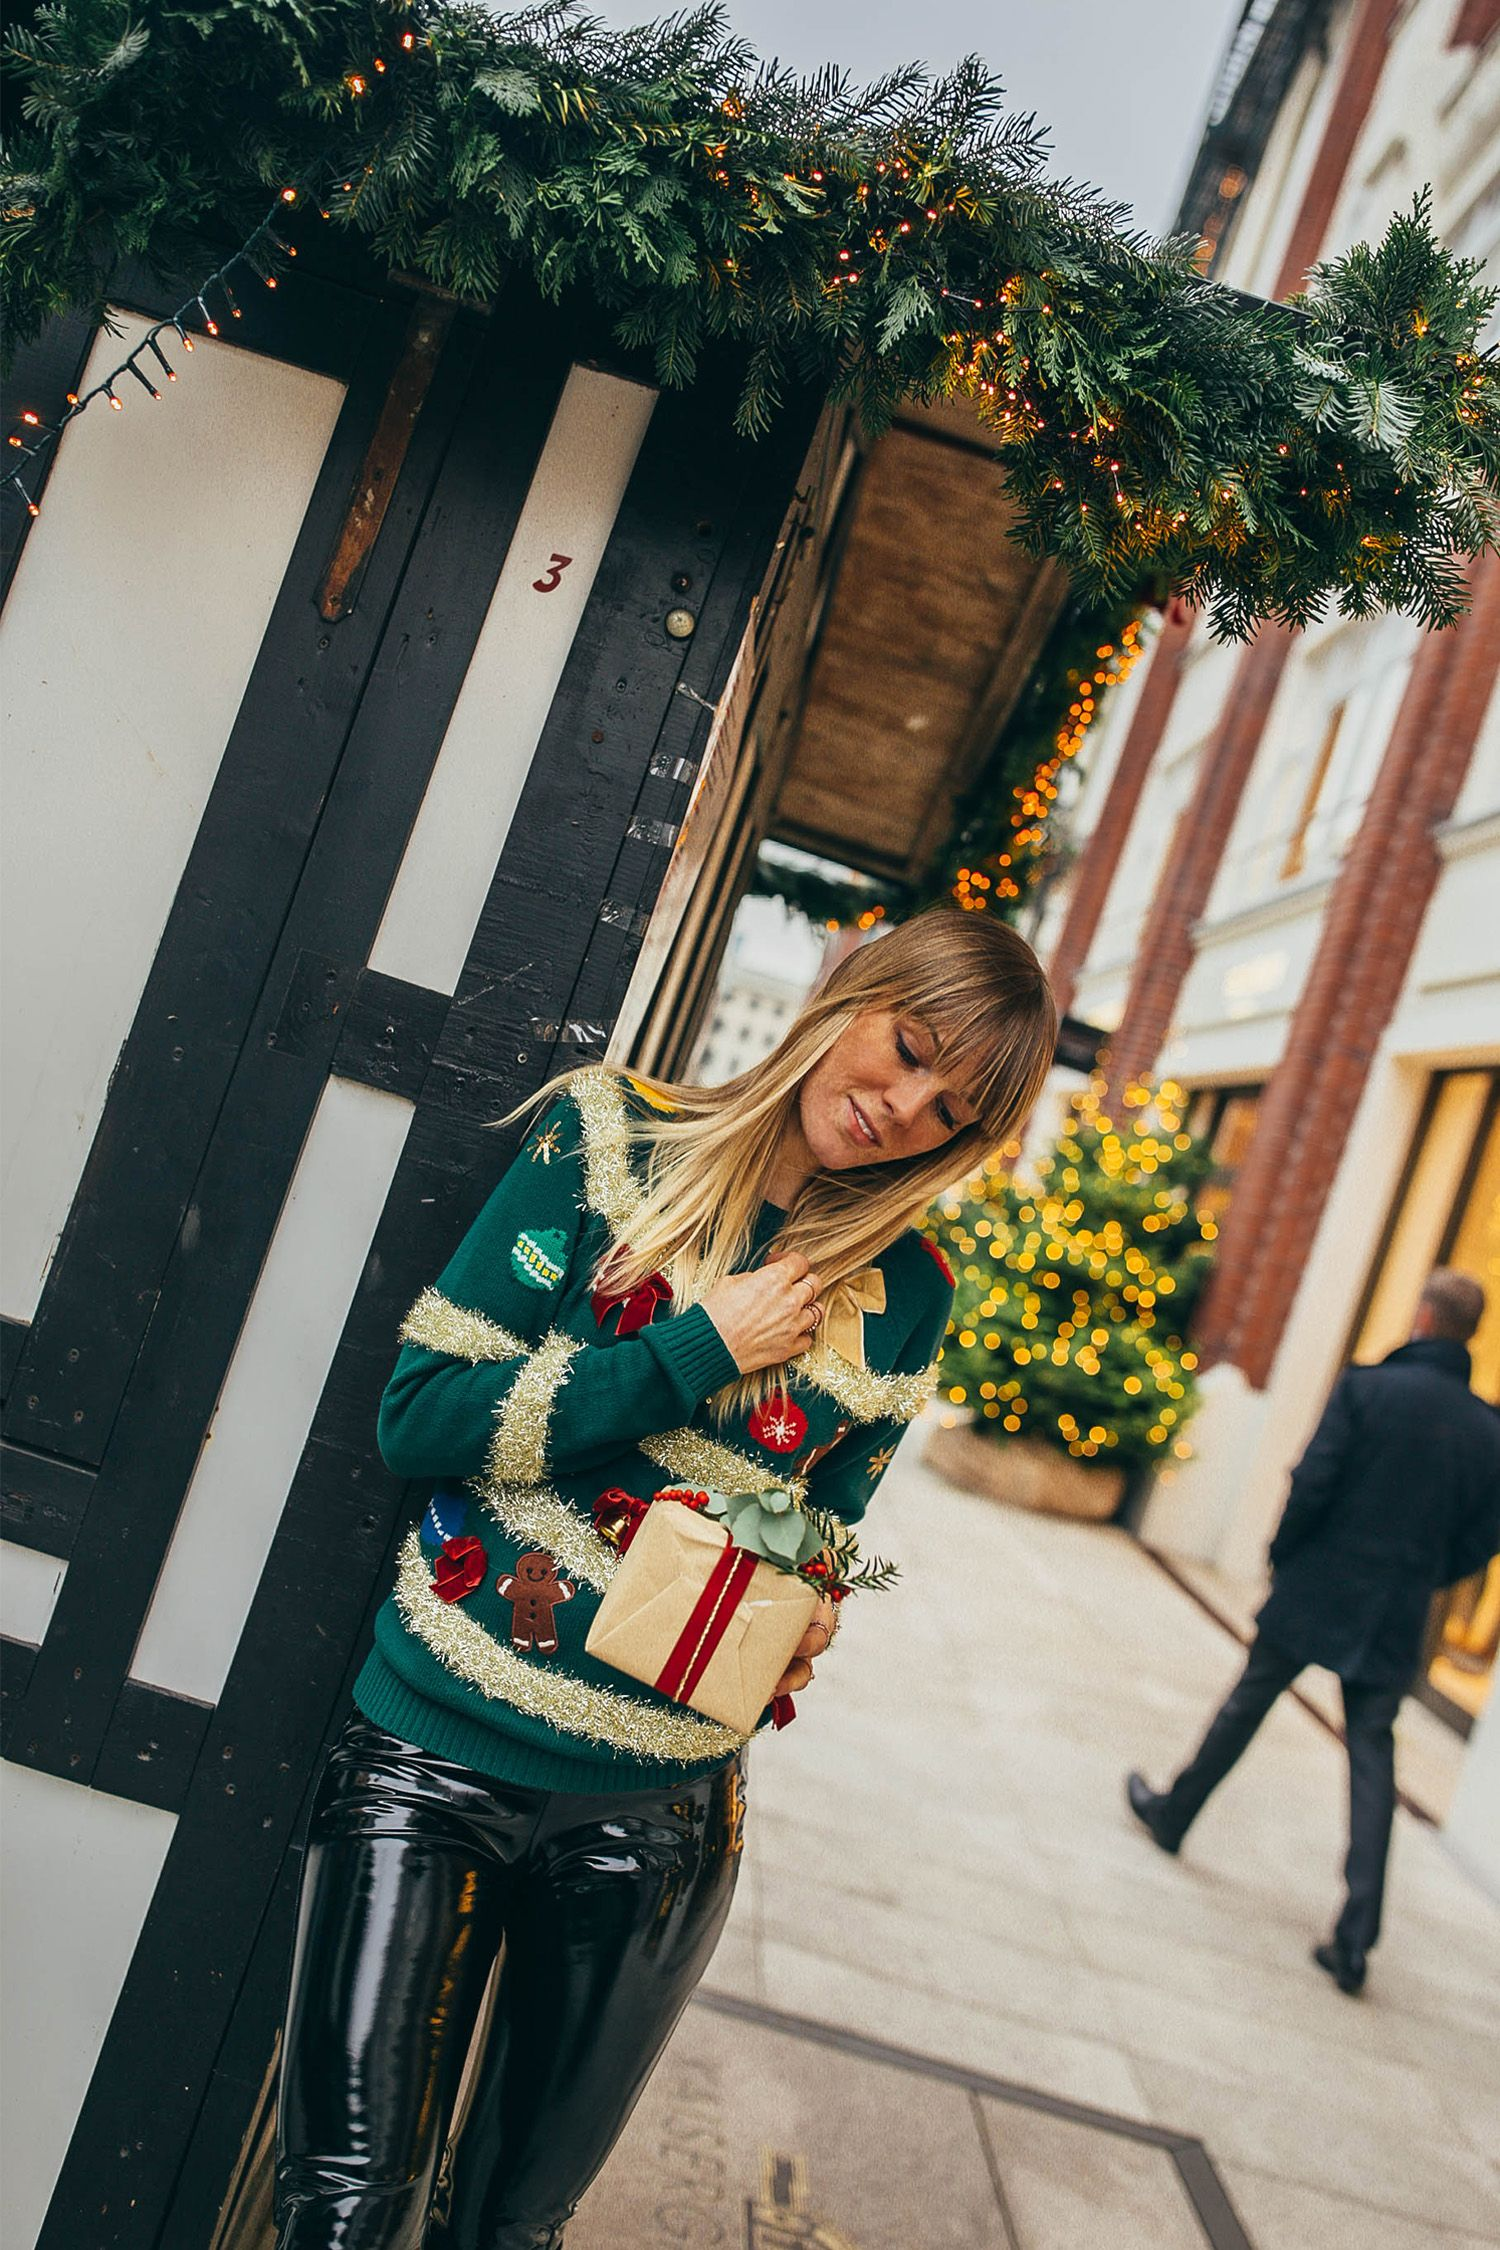 In love with cute, funny and cosy sweaters for christmas. #christmas #christmaslook #christmassweater #xmassweater #cosyknit #xmastime #winterfashion #fashion #blogger #bloggerin #fashionblogger #gift #xmasgift #christmasgift #outfitinspiration